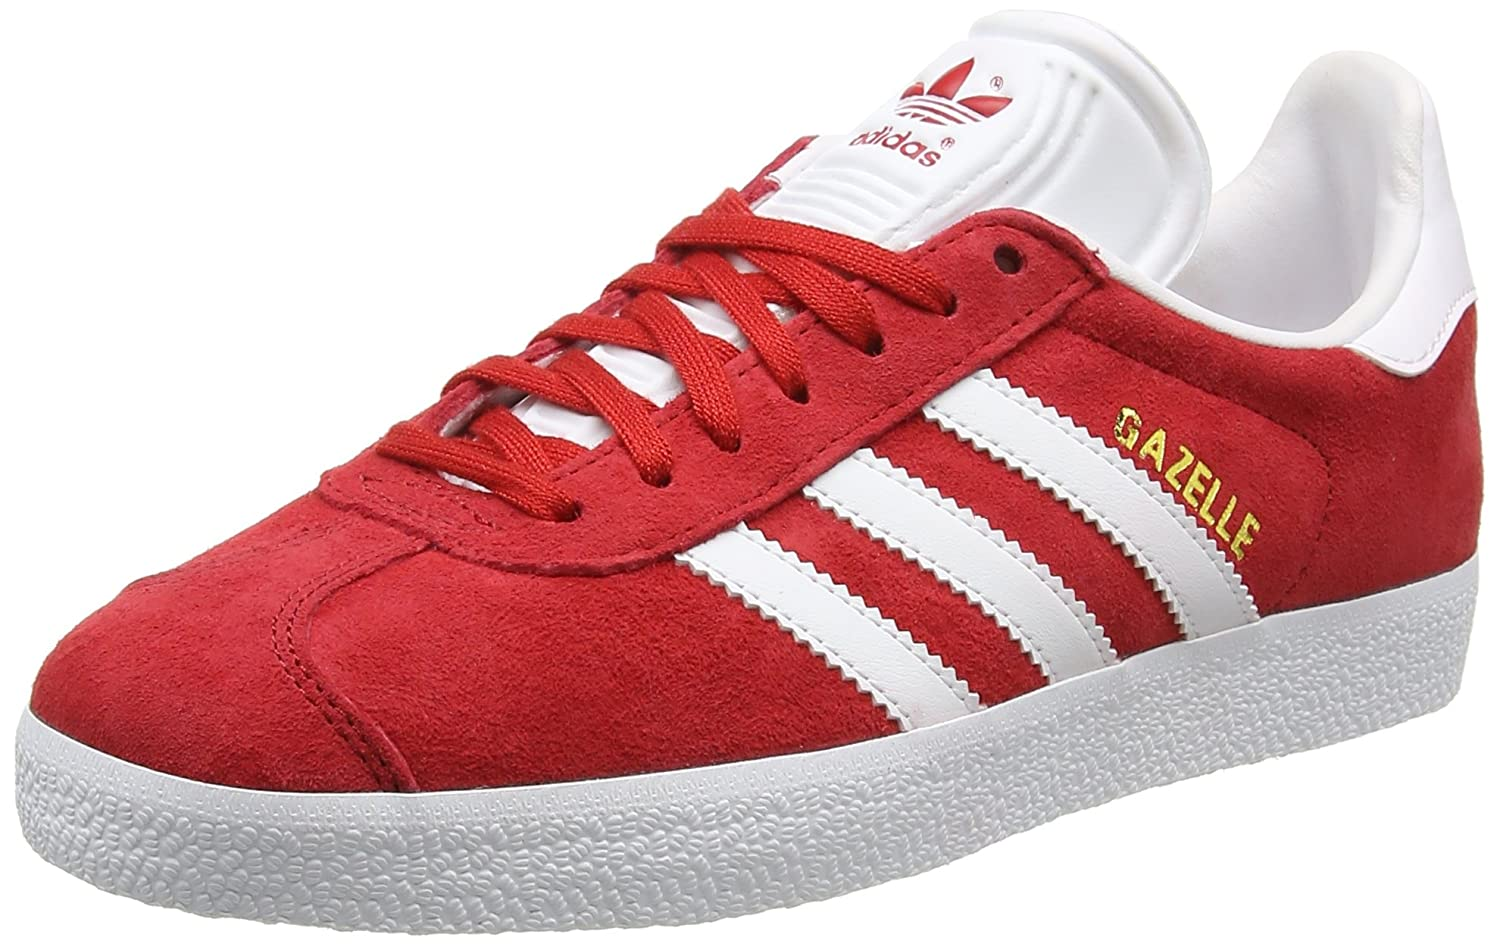 adidas Men's Gazelle Casual Sneakers B01HLJWYV0 10.5 M US|Powred/White/Goldmt